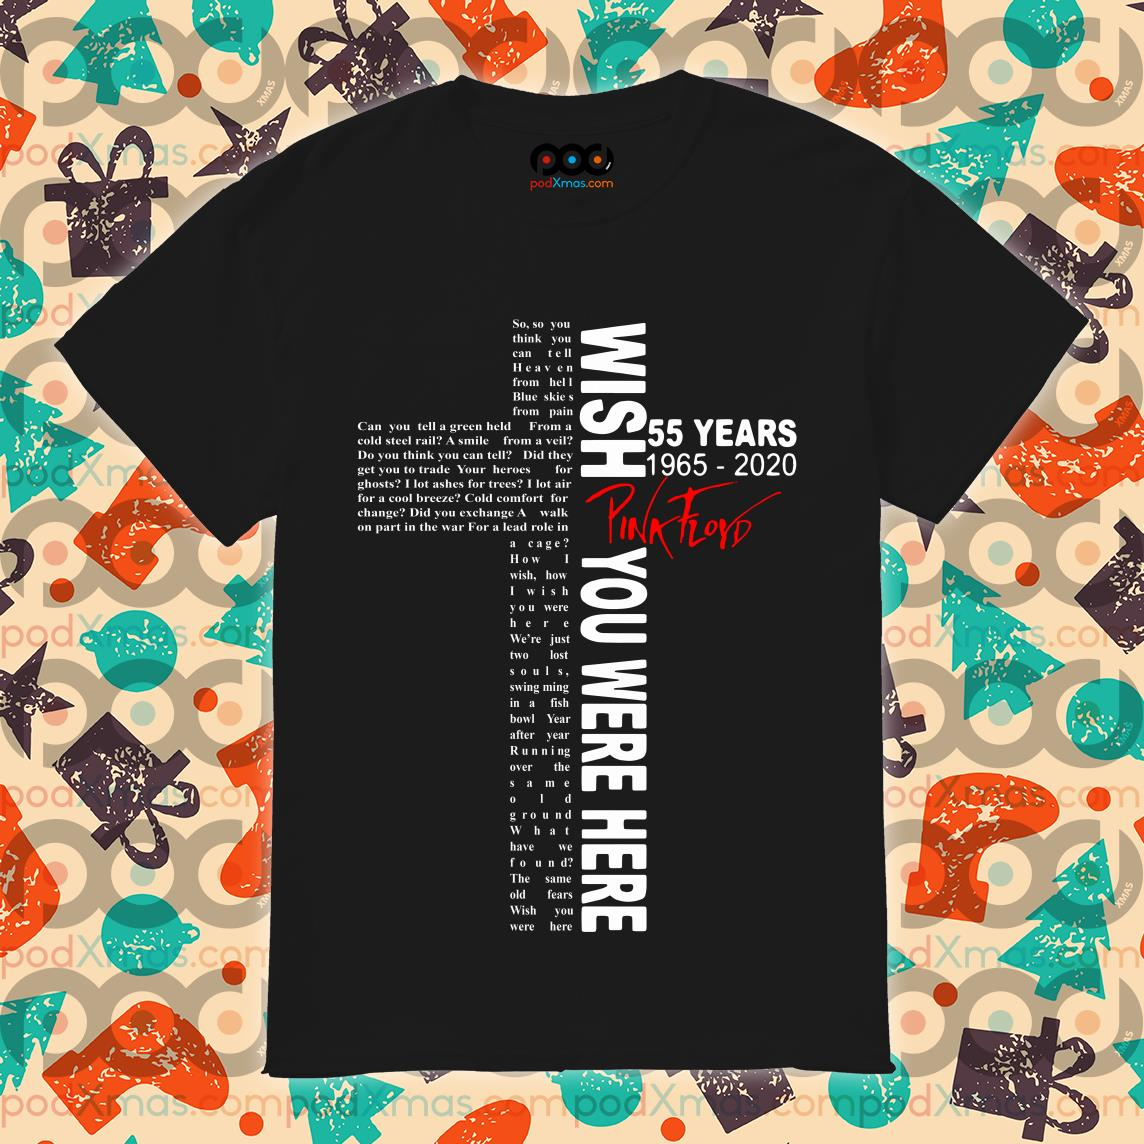 Wish you were here lyrics by Pink Floyd 55 years 1965 2020 shirt